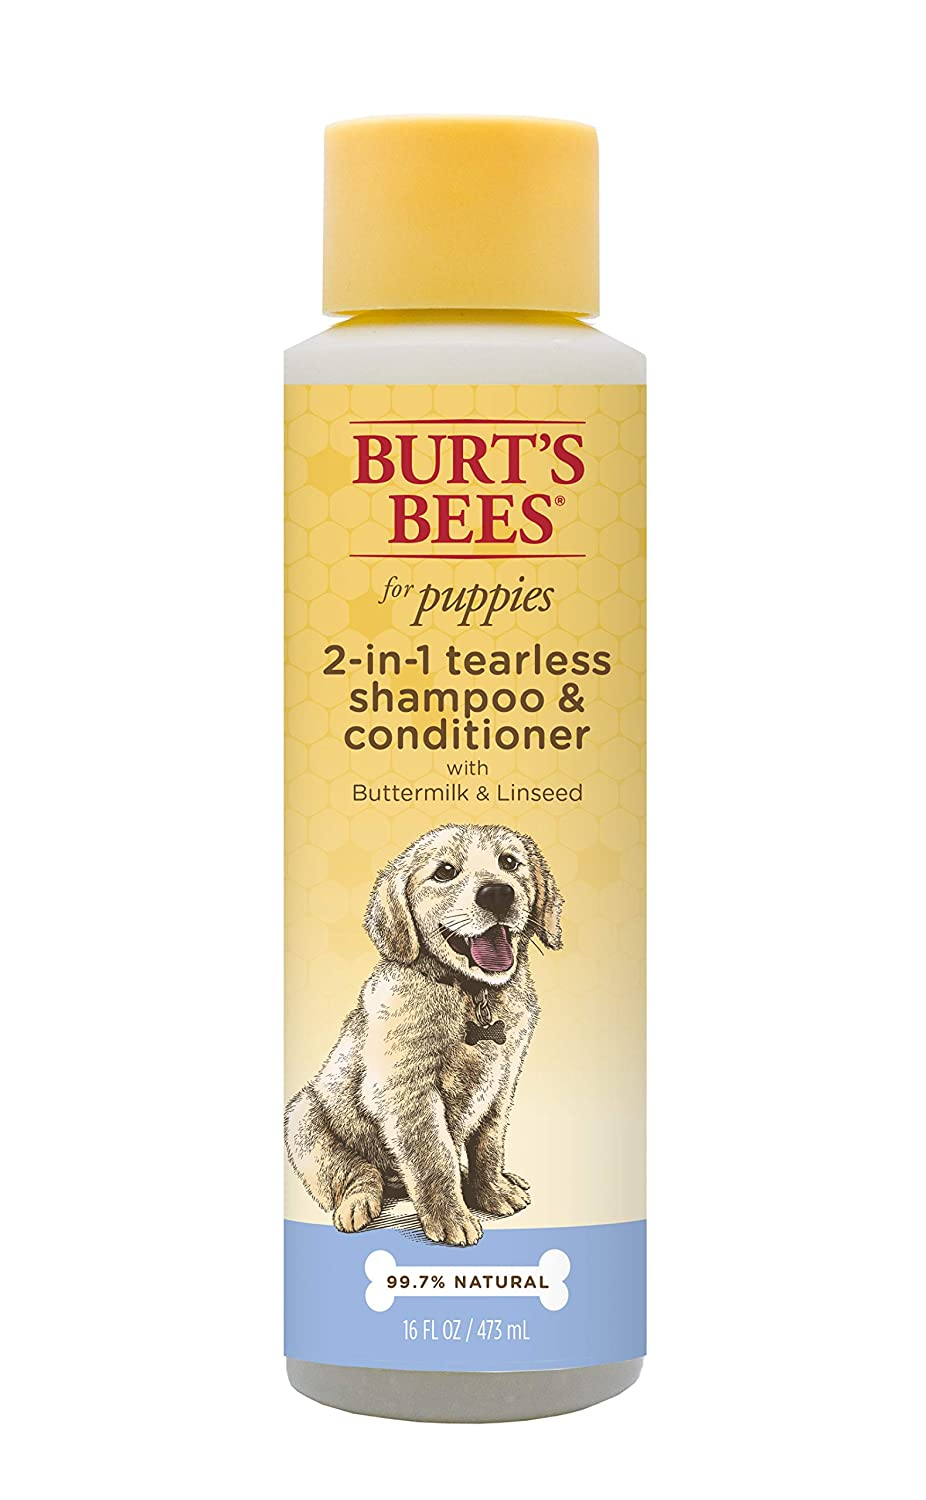 Burt's Bees for Dogs All-Natural Tearless 2 in 1 Puppy Shampoo and Conditioner with Buttermilk and Linseed Oil | Best Tear-Free Shampoo and Conditioner for All Dogs and Puppies for Gentle Fur 家猫 1 Pack B00CVTRO48  1 Pack